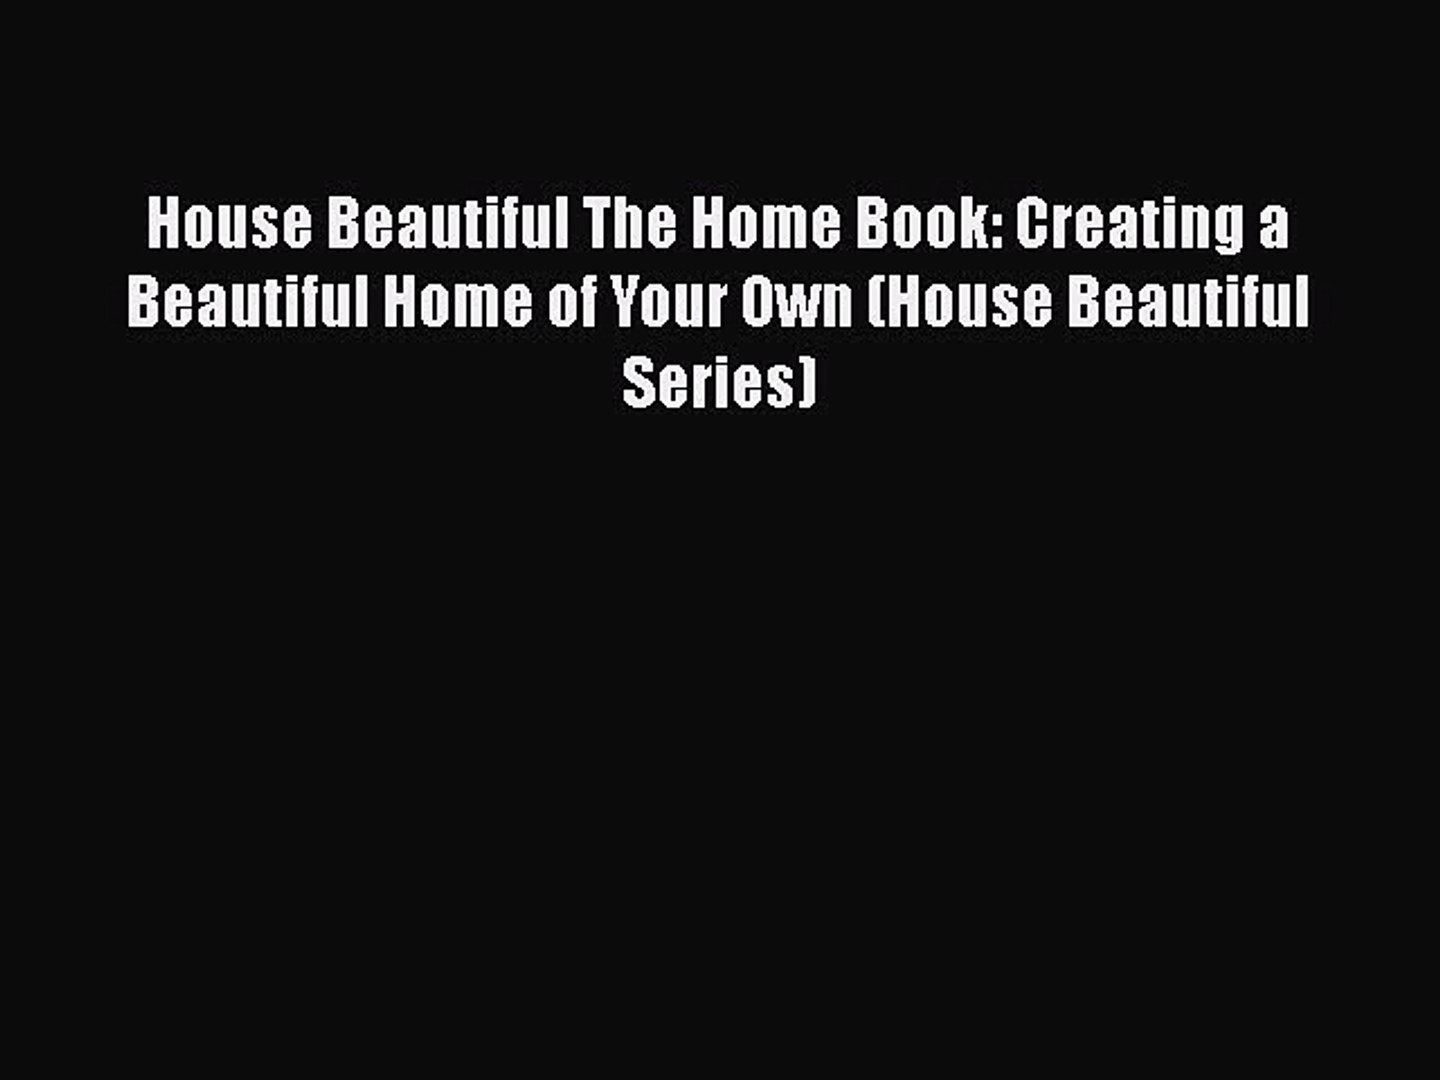 [Read Book] House Beautiful The Home Book: Creating a Beautiful Home of Your Own (House Beautiful